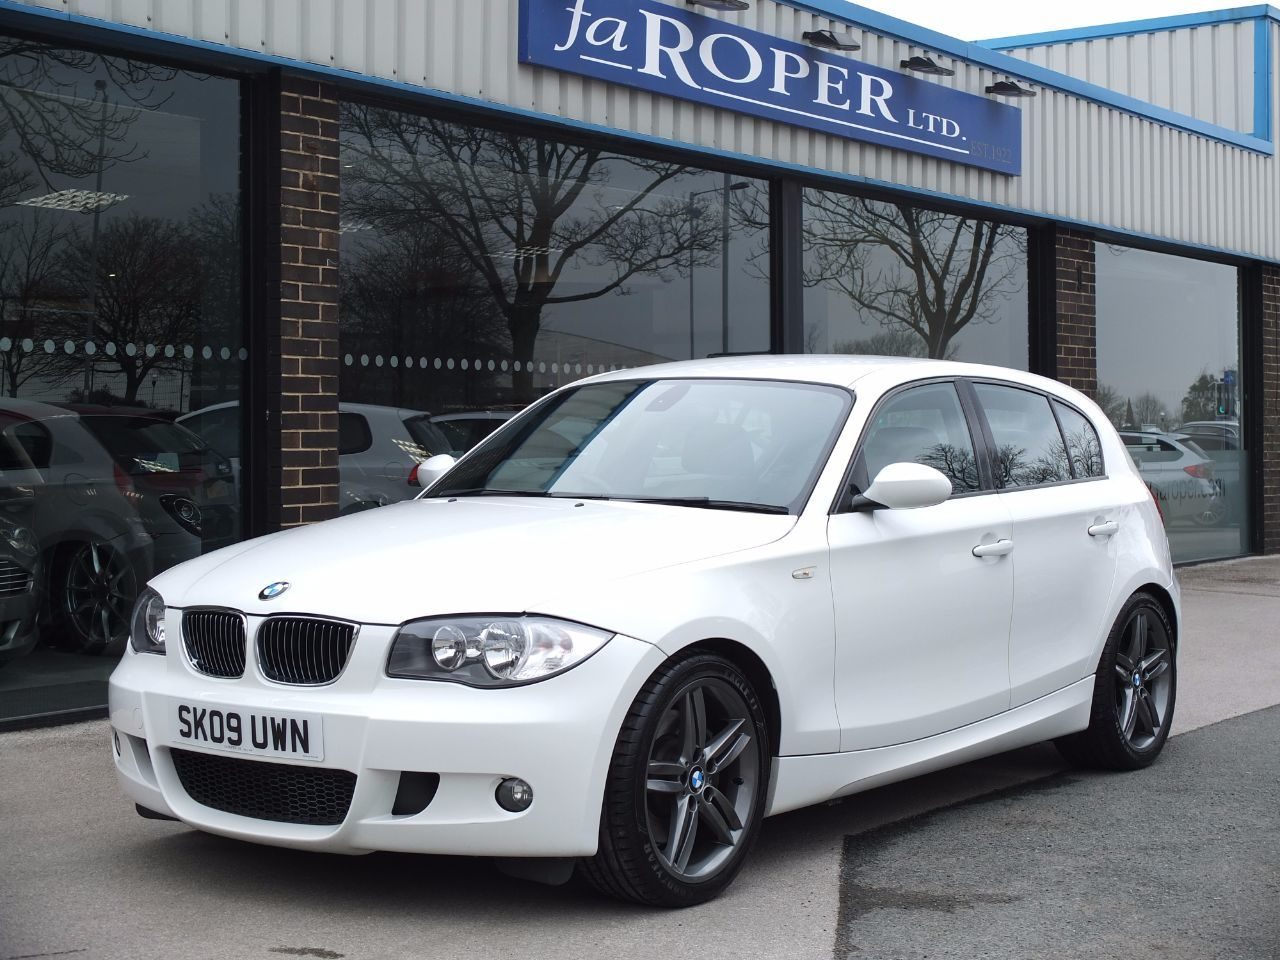 second hand bmw 1 series 130i m sport 5 door for sale in bradford west yorkshire fa roper ltd. Black Bedroom Furniture Sets. Home Design Ideas